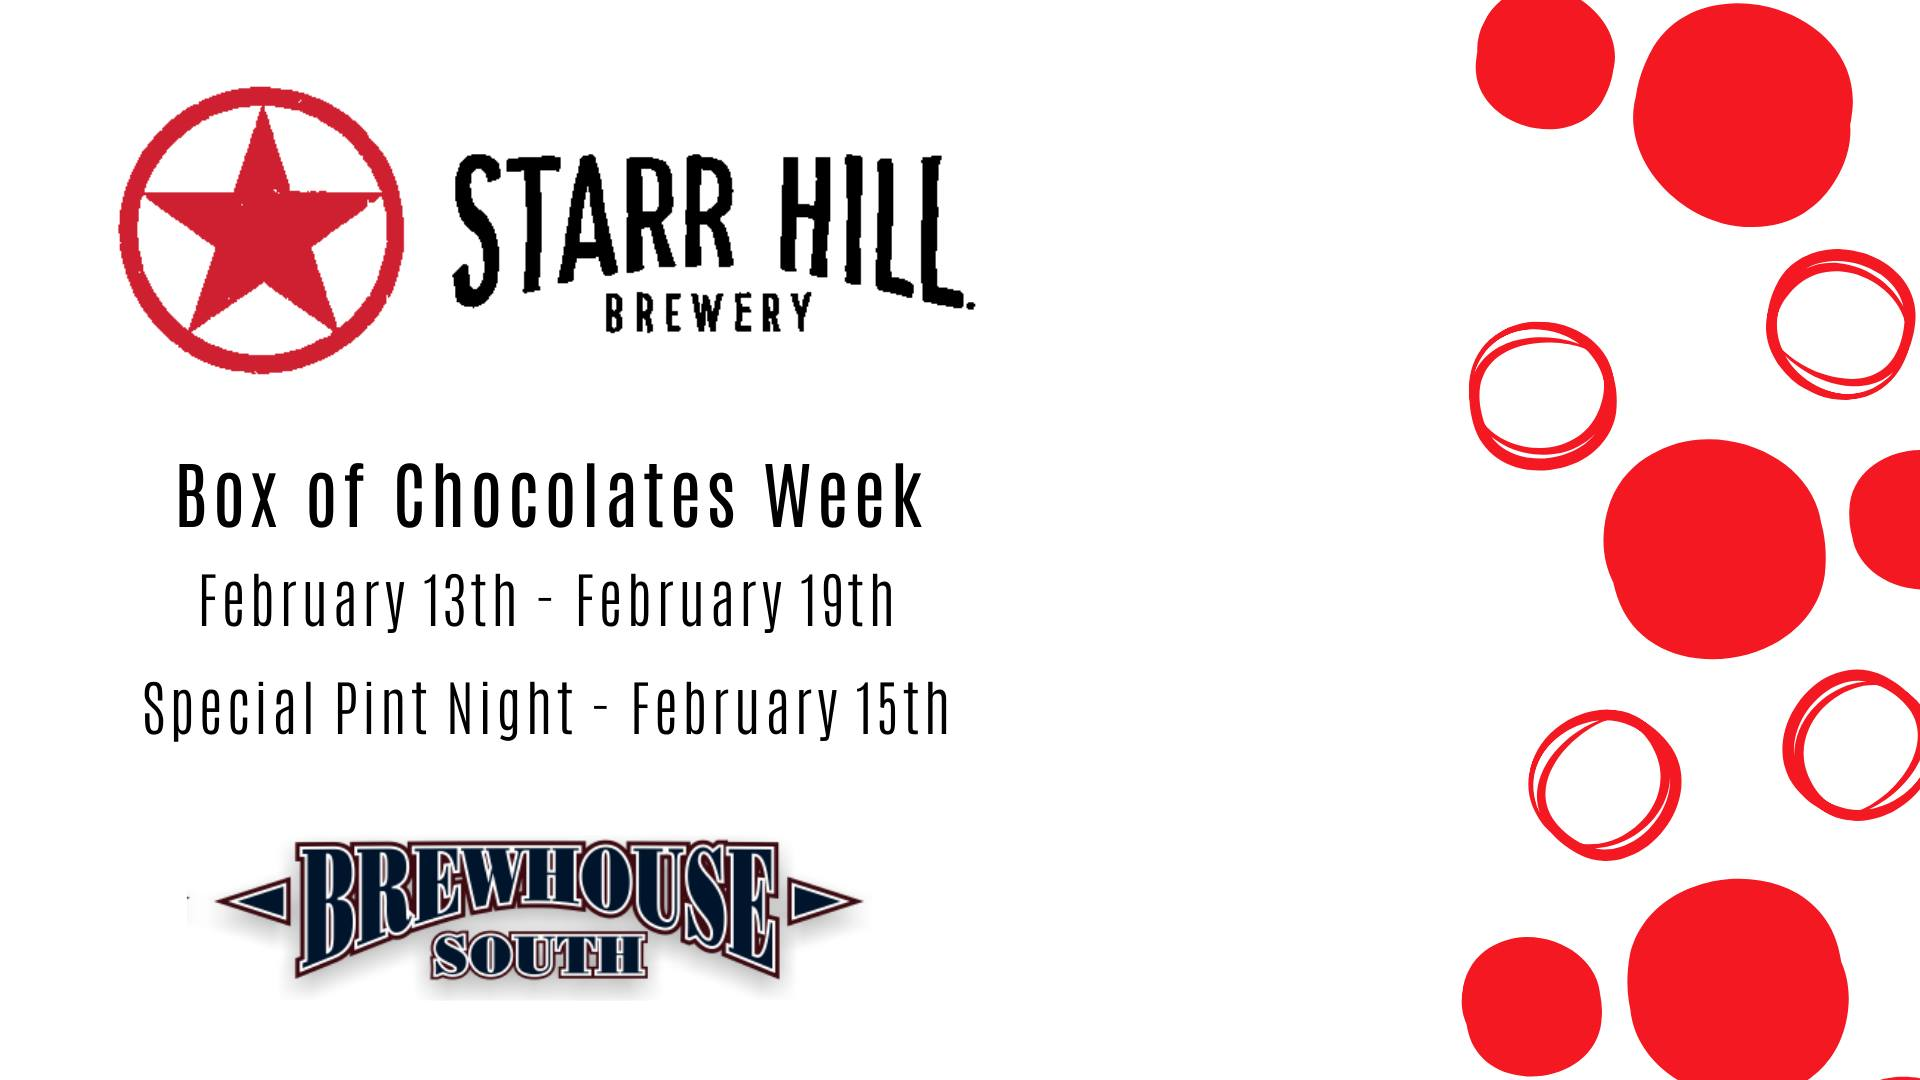 Starr Hill Box of Chocolates Week